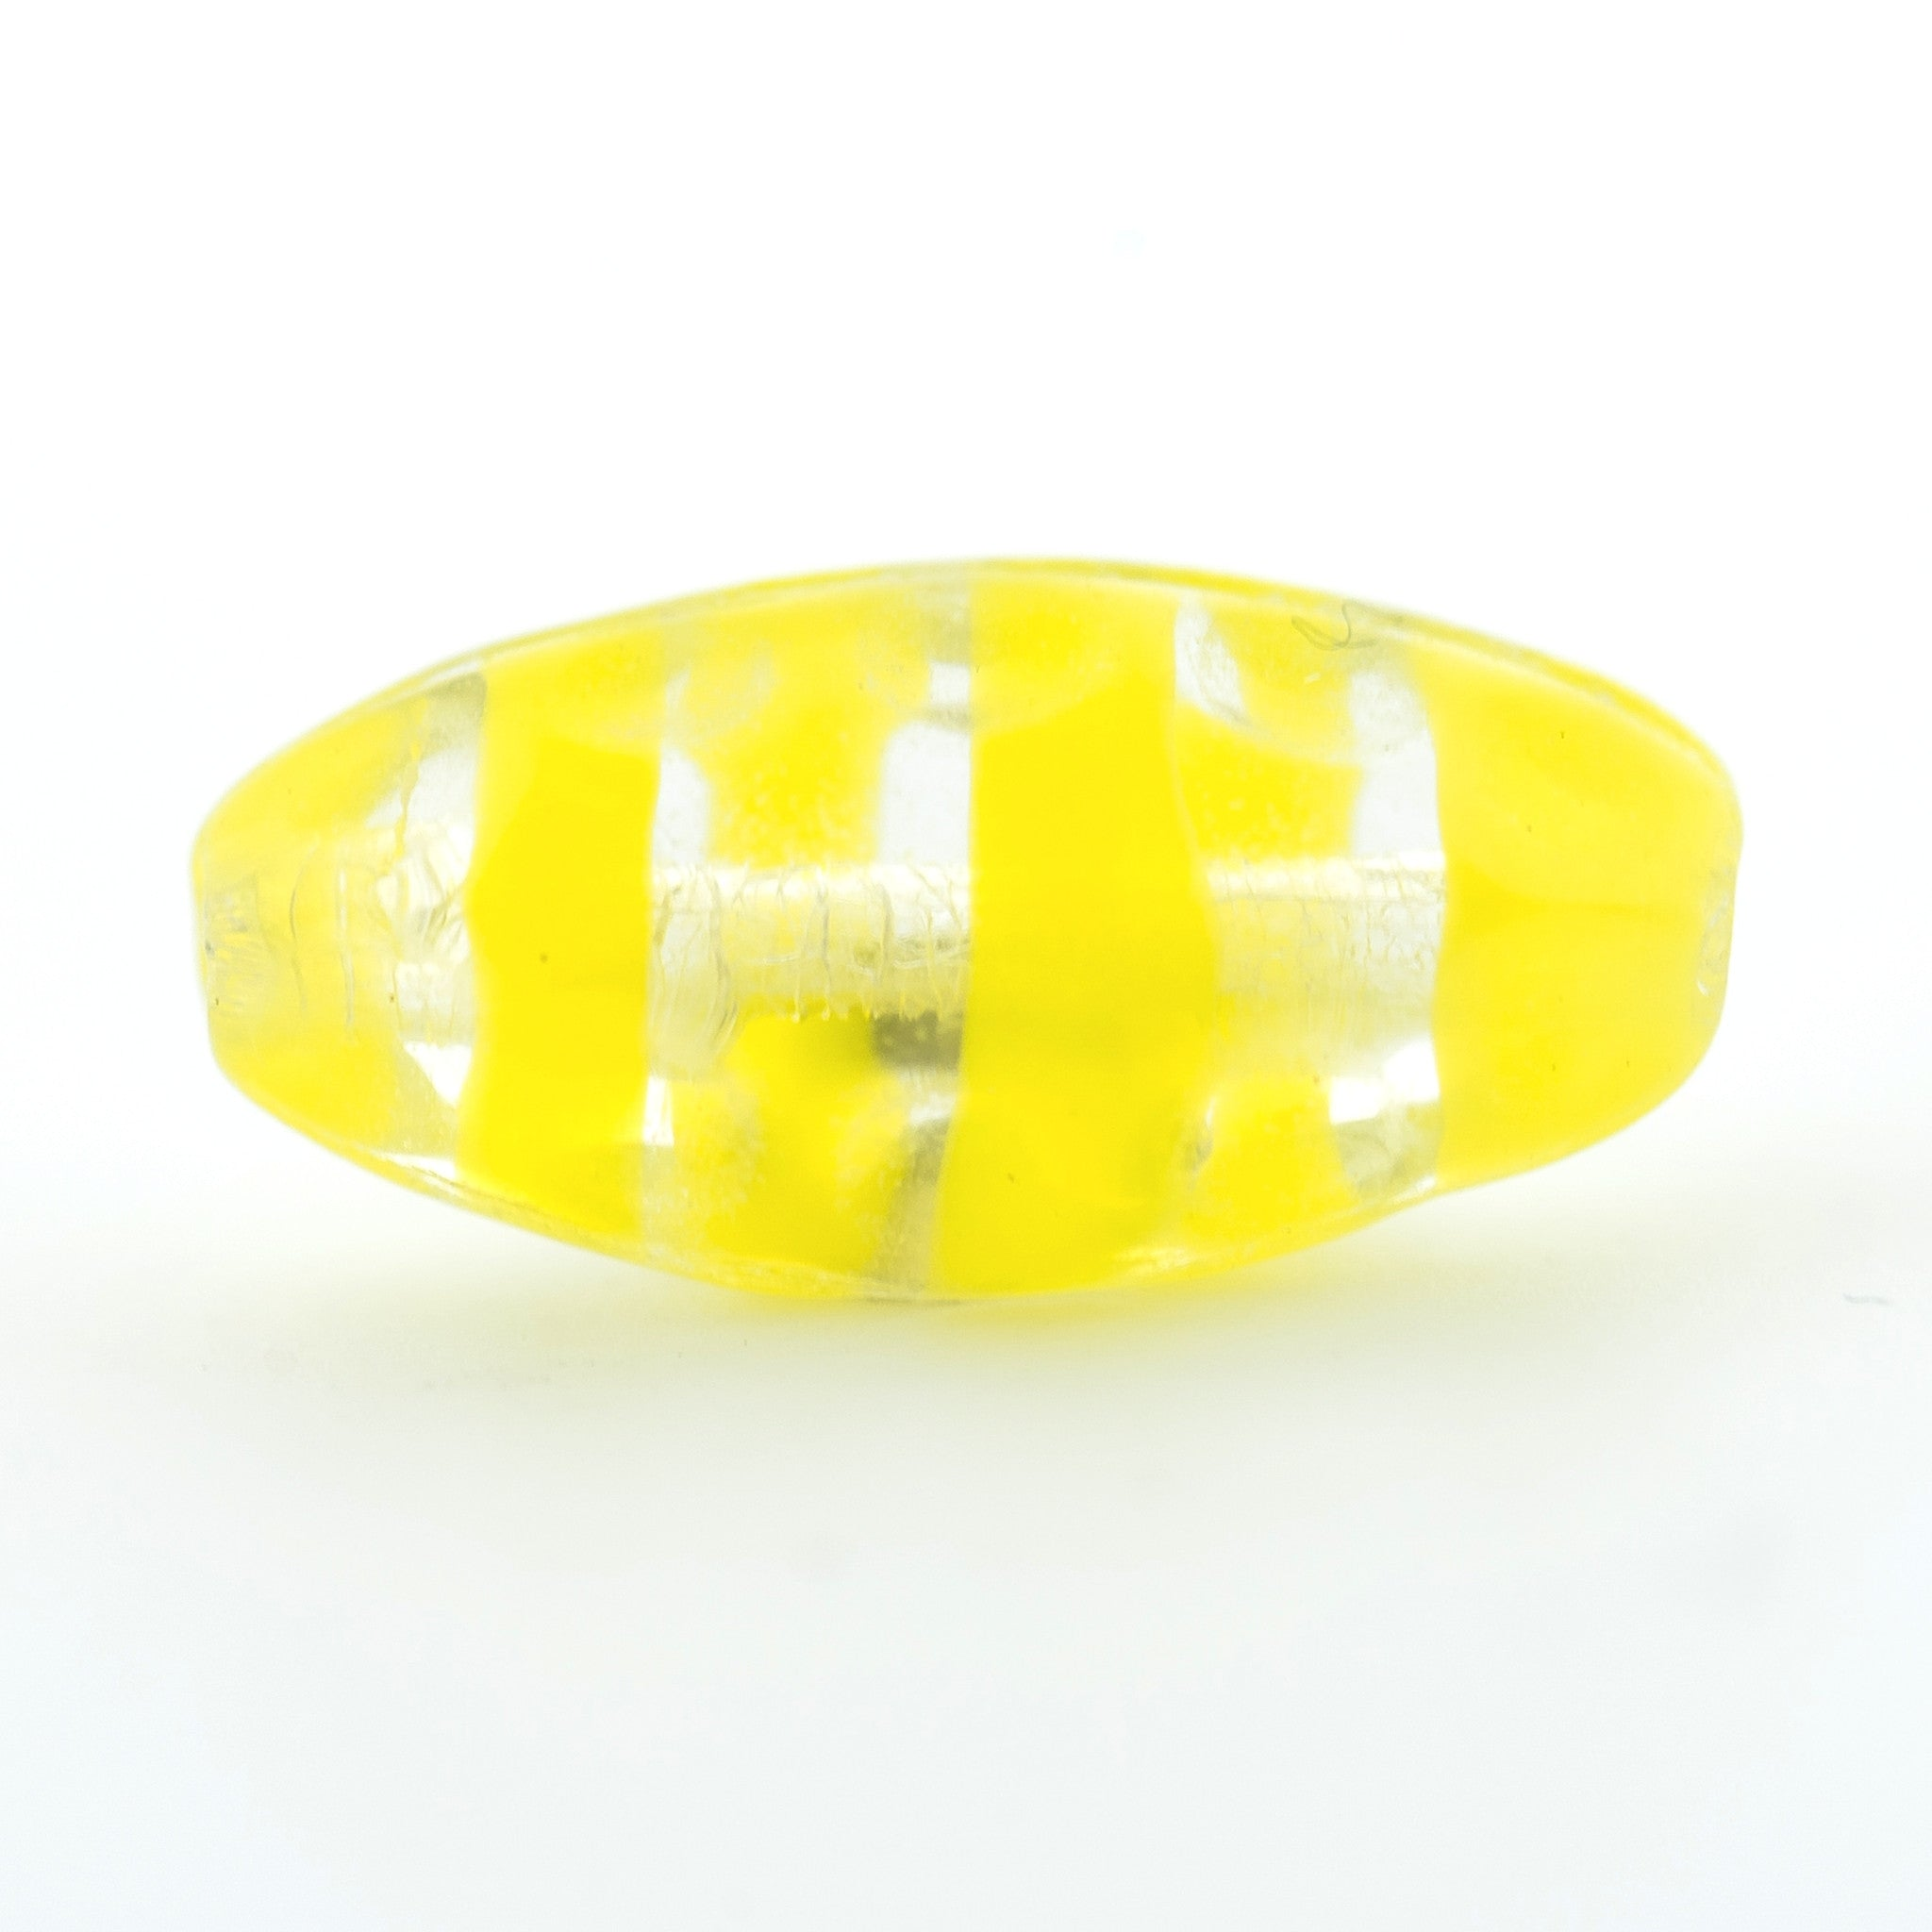 Crystal/Yellow Swirl Glass Oval Bead (36 pieces)